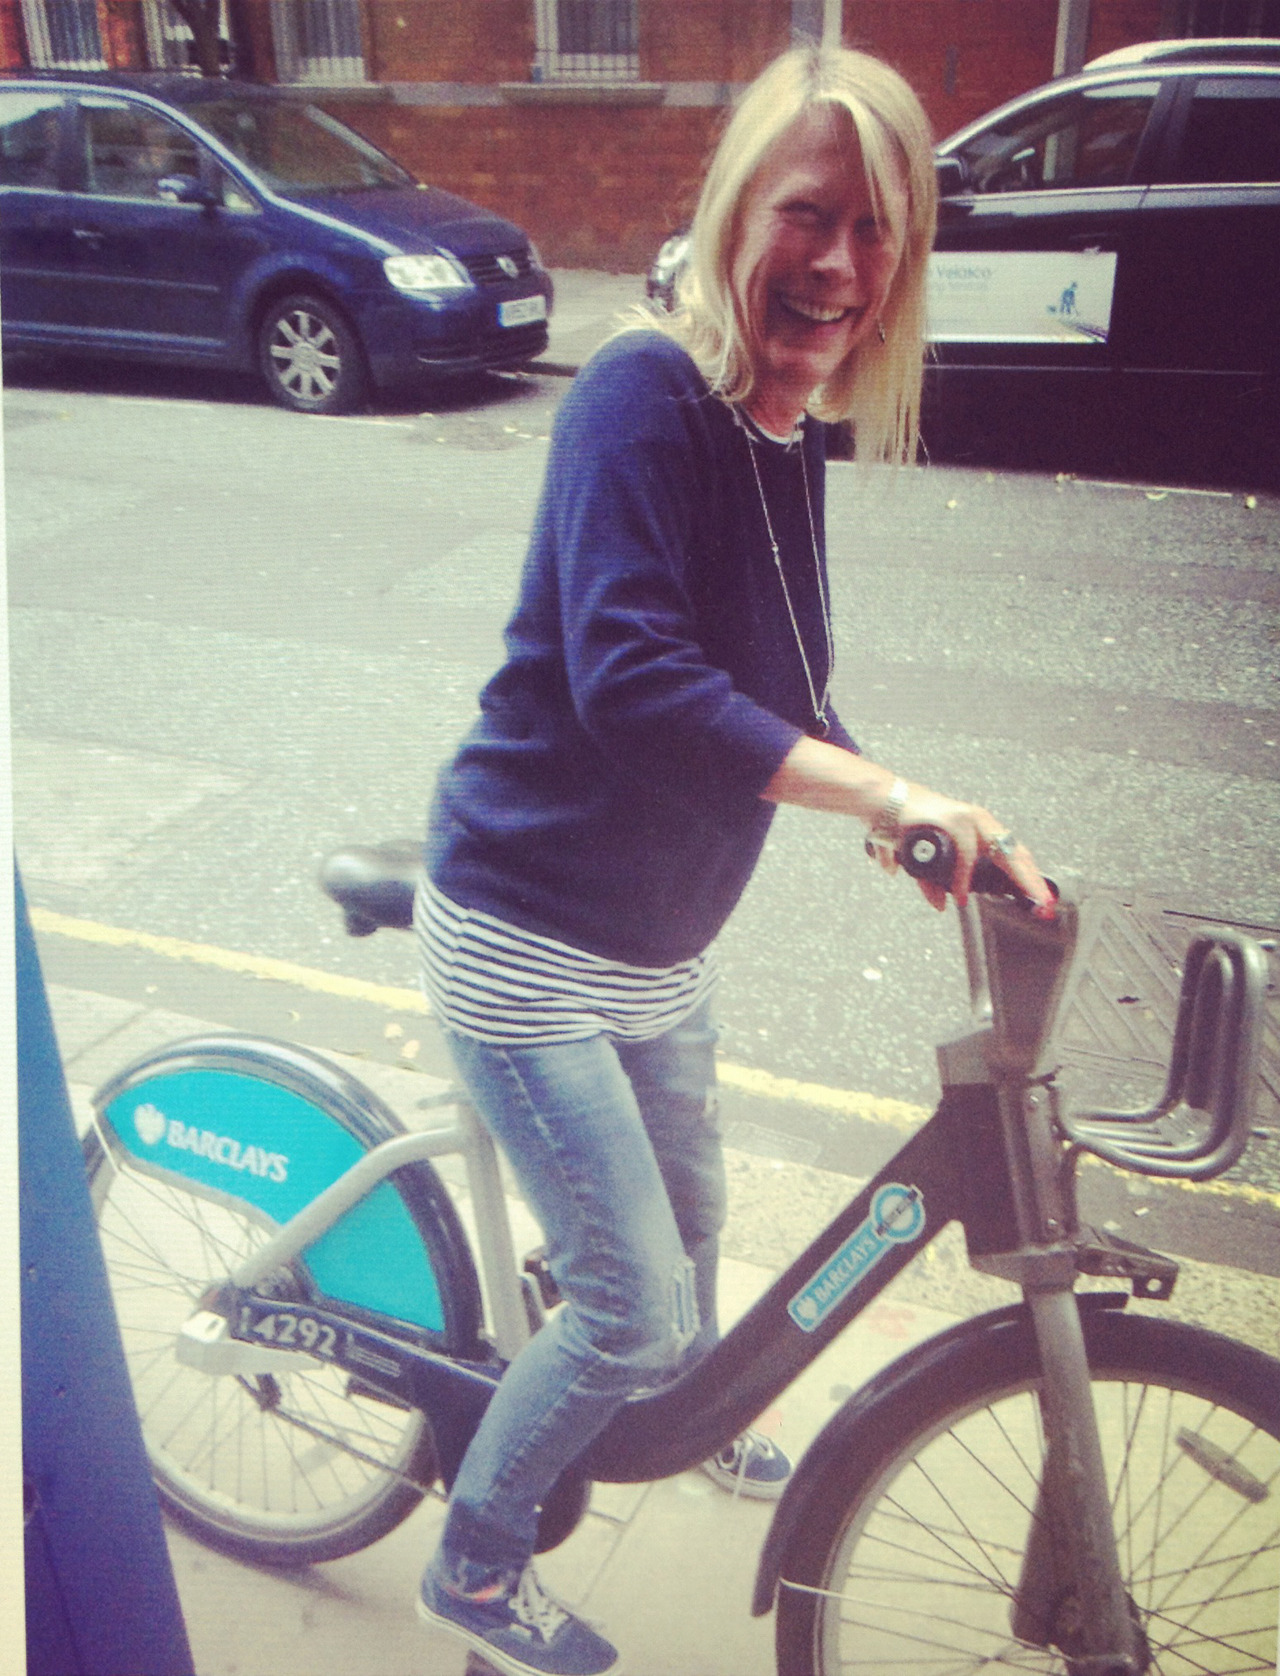 WATCH OUT LONDONERS… Carole White is on the BorisBike!!!